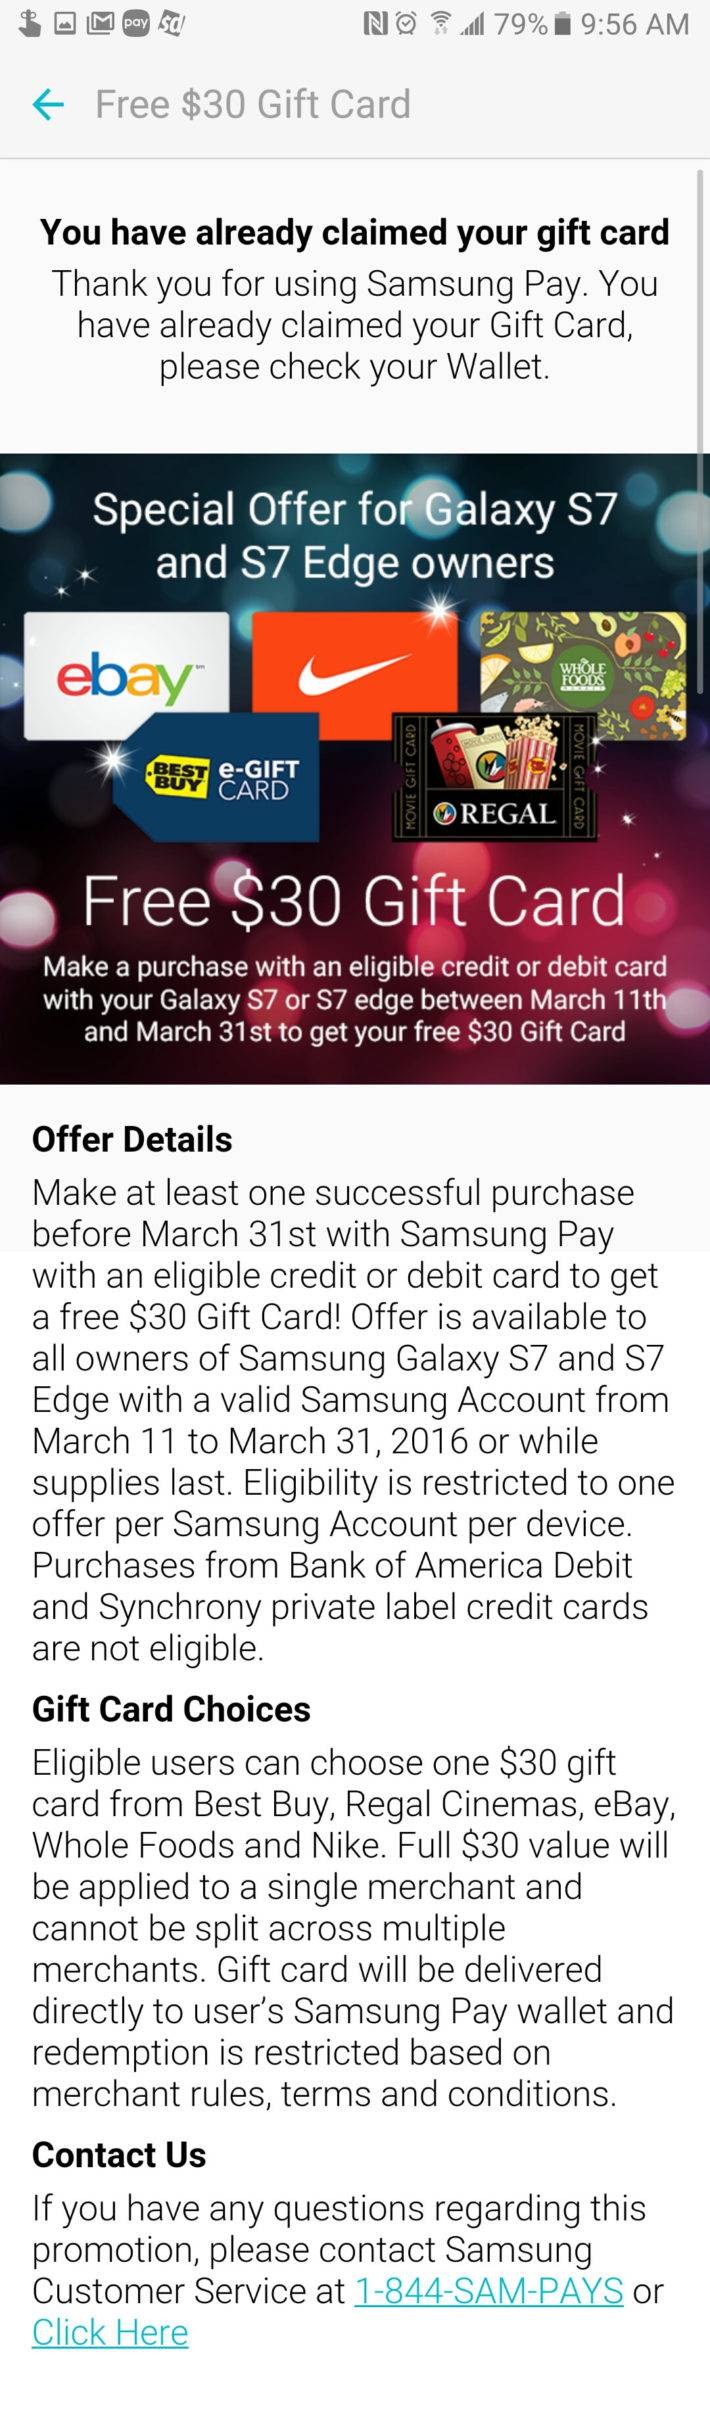 $30 Gift Cards Going To Samsung Pay Users On Galaxy S7/S7 Edge ...